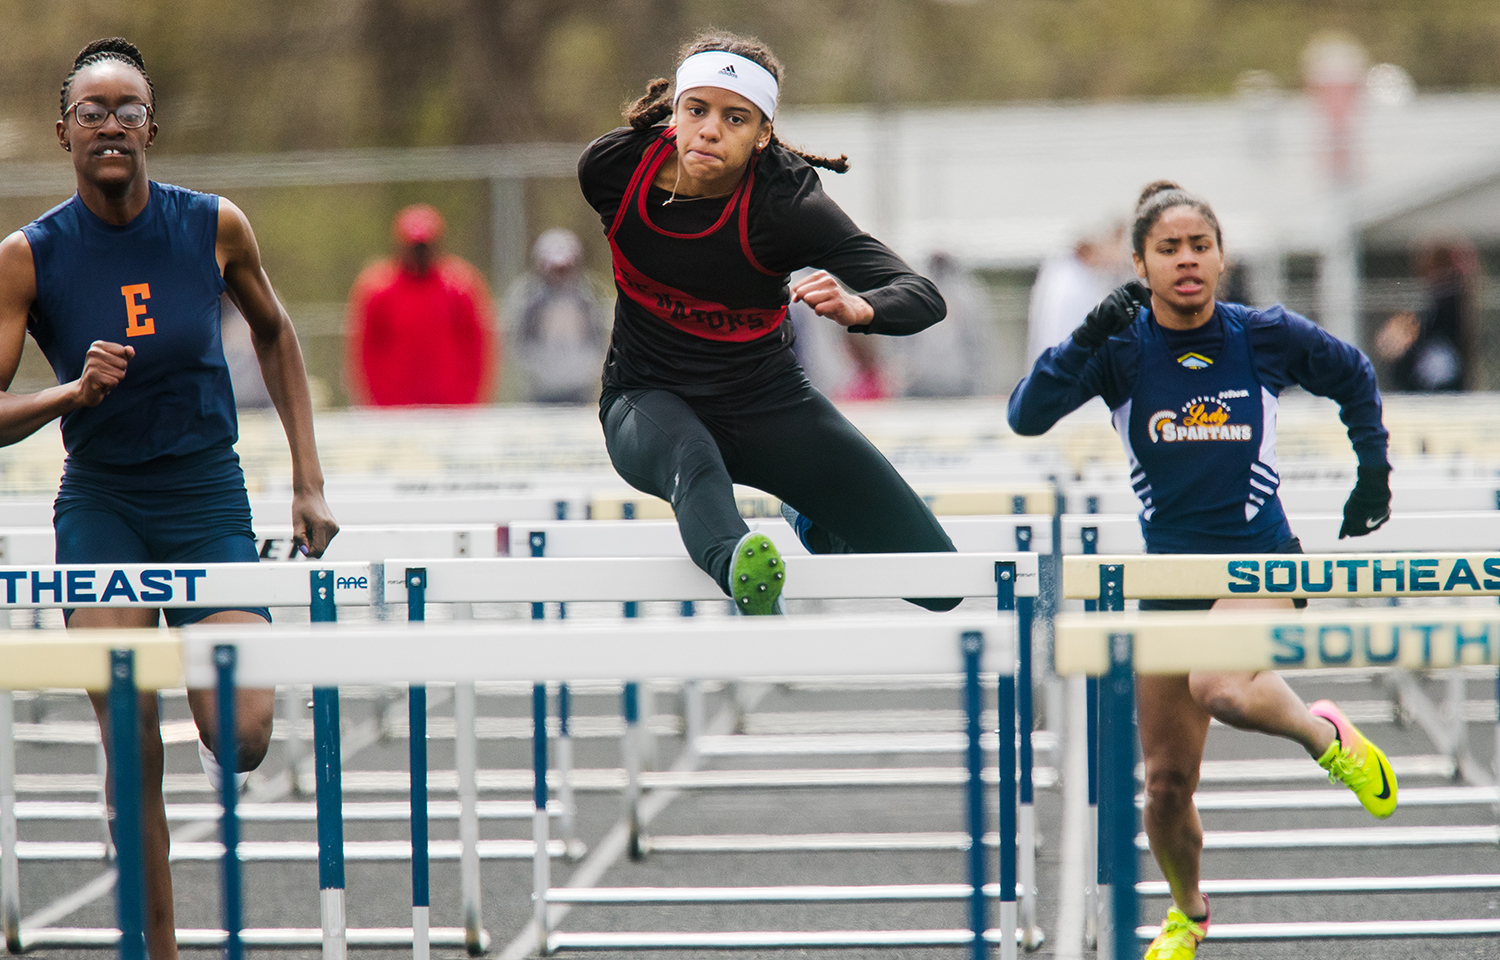 Springfield's Lauren Ferguson finishes third in the 100 hurdles during the 2019 Thomas McBride Invitational at Southeast High School Saturday, April 13, 2019. [Ted Schurter/The State Journal-Register]